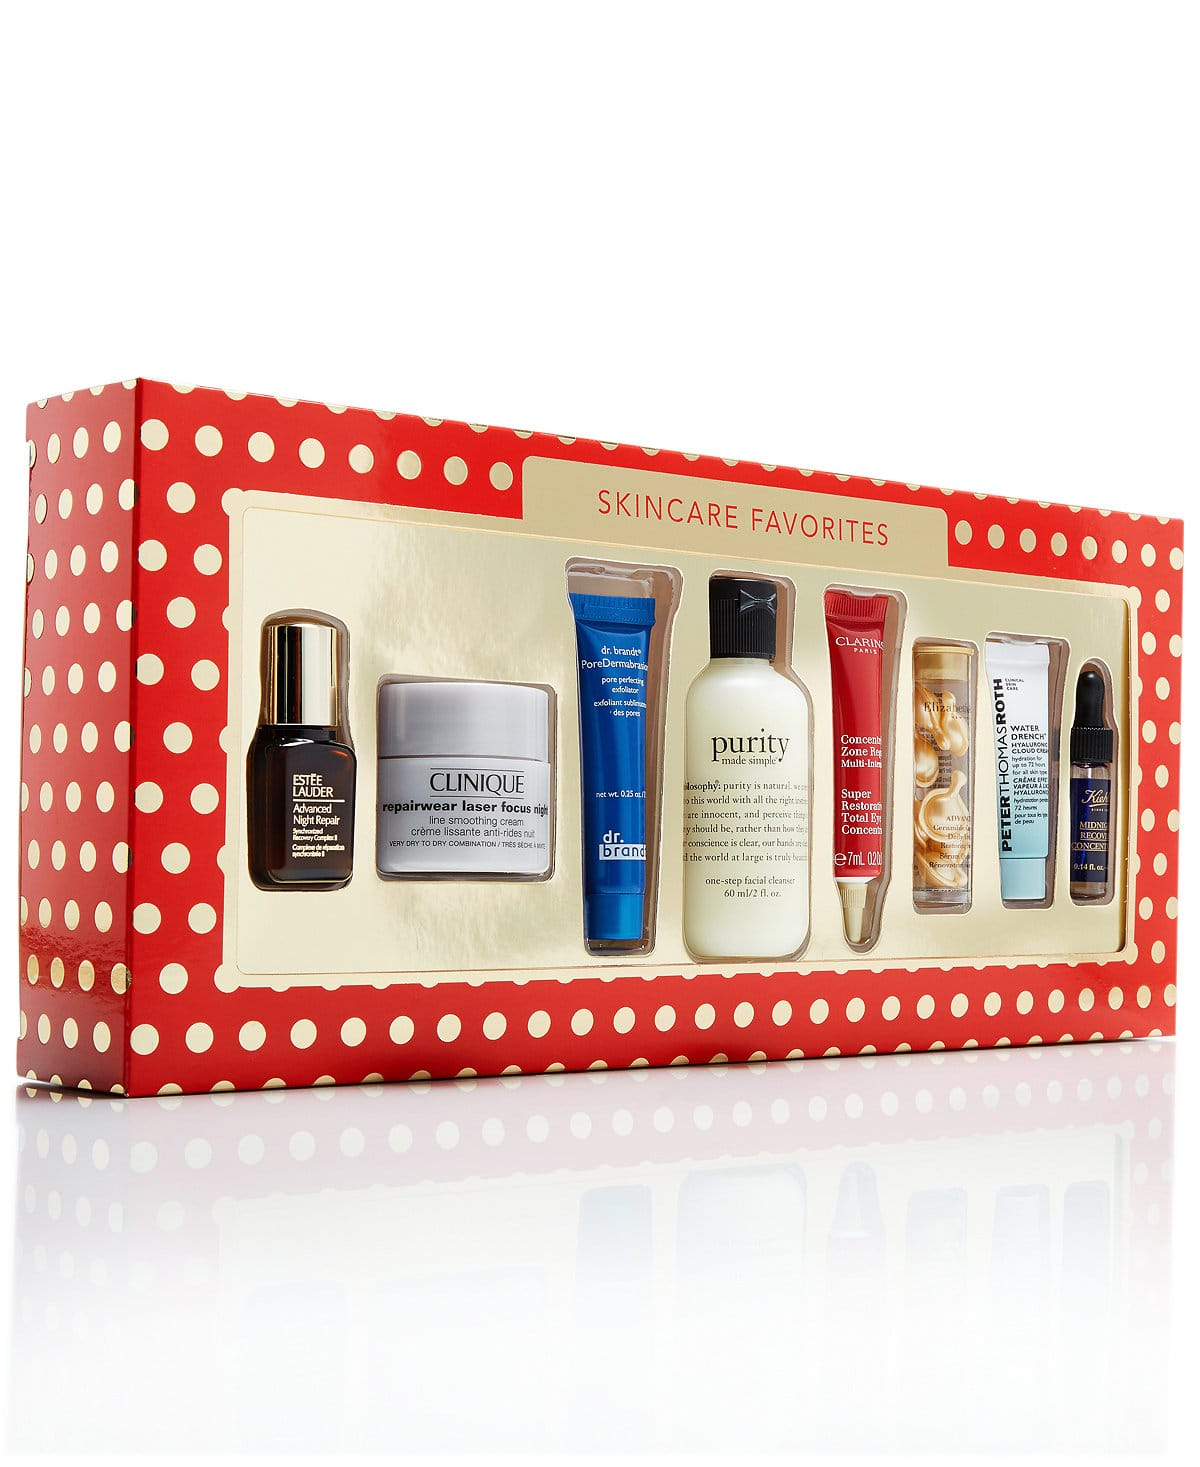 Macy's 8-Pc. Skincare Favorites Gift Set $19.99 + Free Shipping (Clinique / philosophy / Estee Lauder, More)